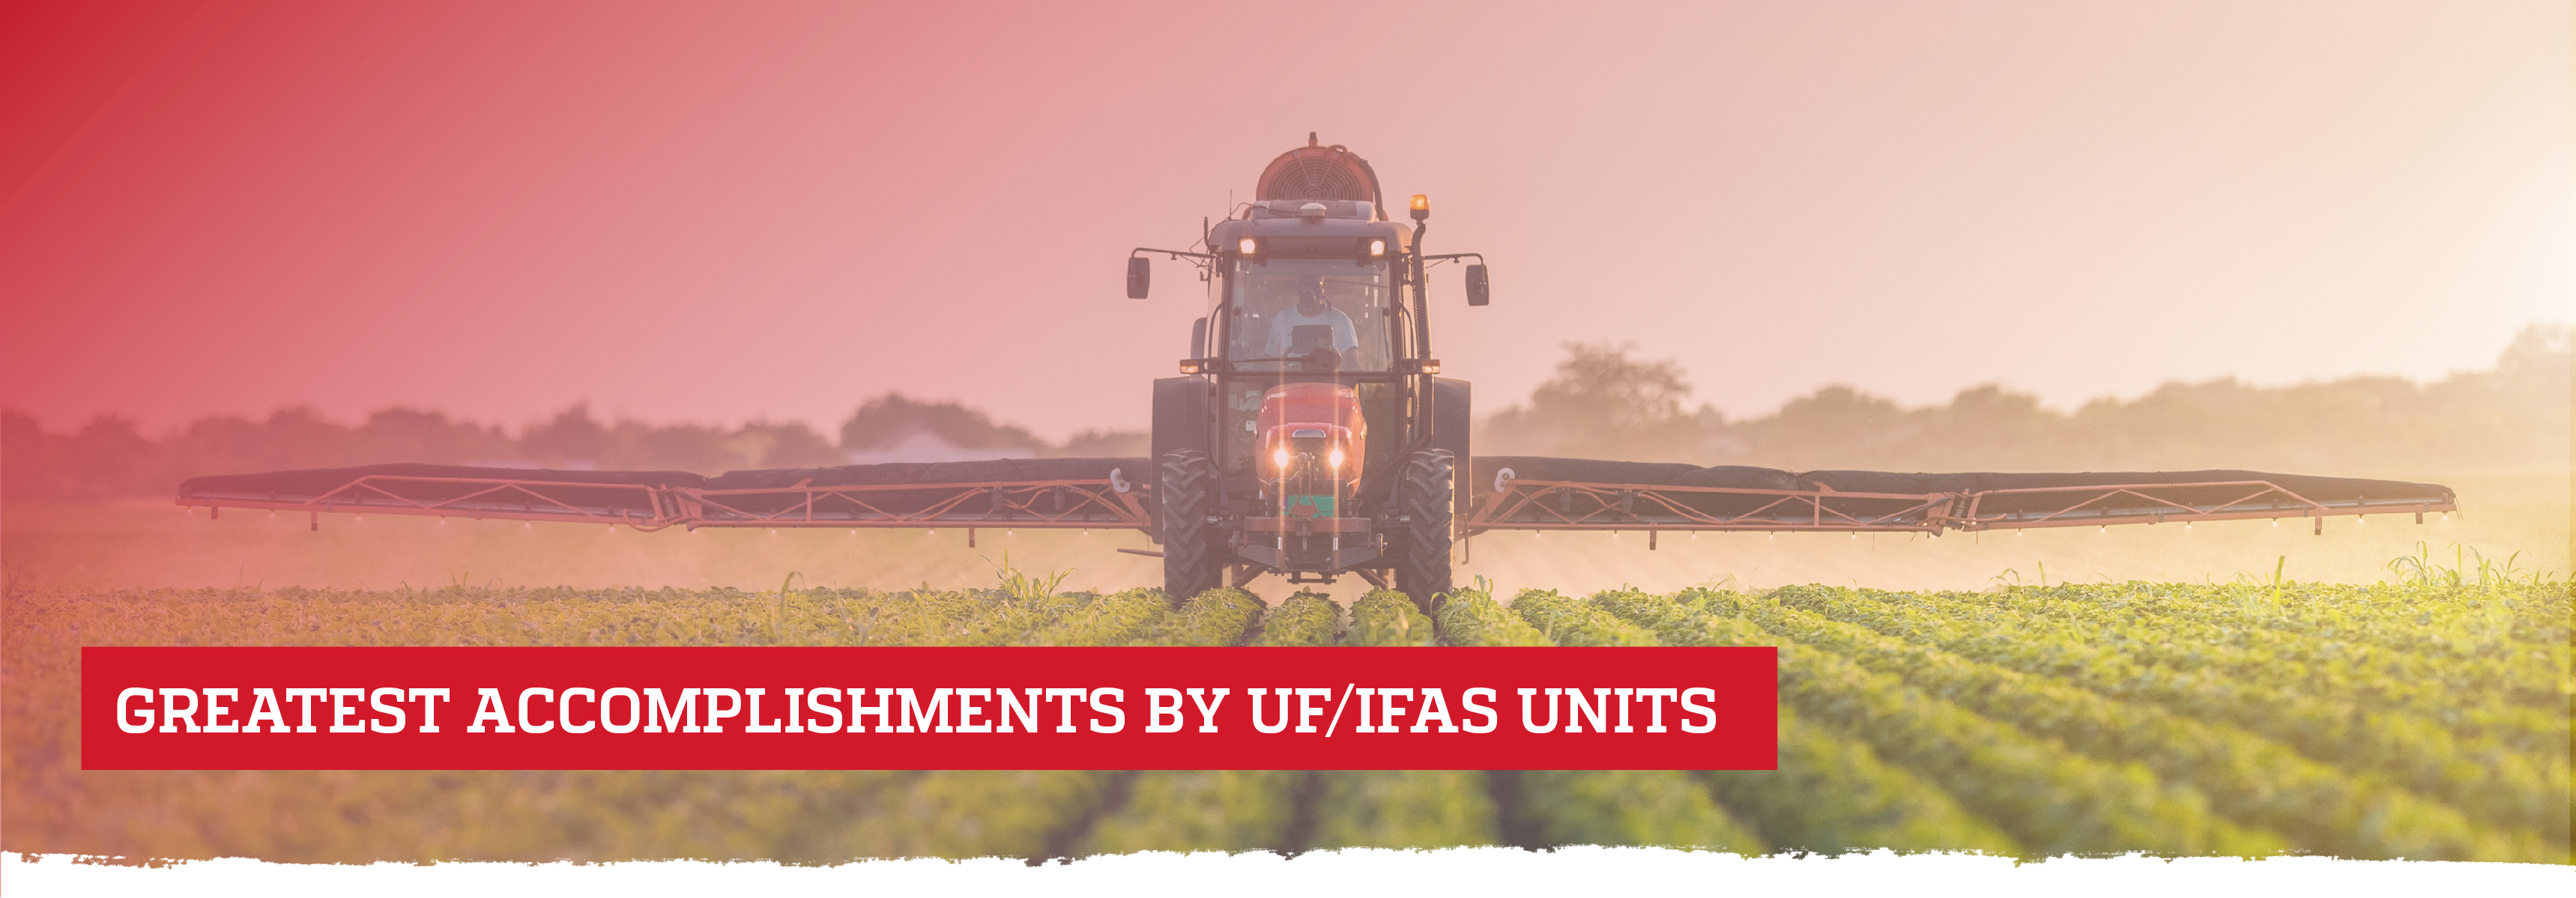 Greatest accomplishments by UF/IFAS units; Photo of tractor spraying field